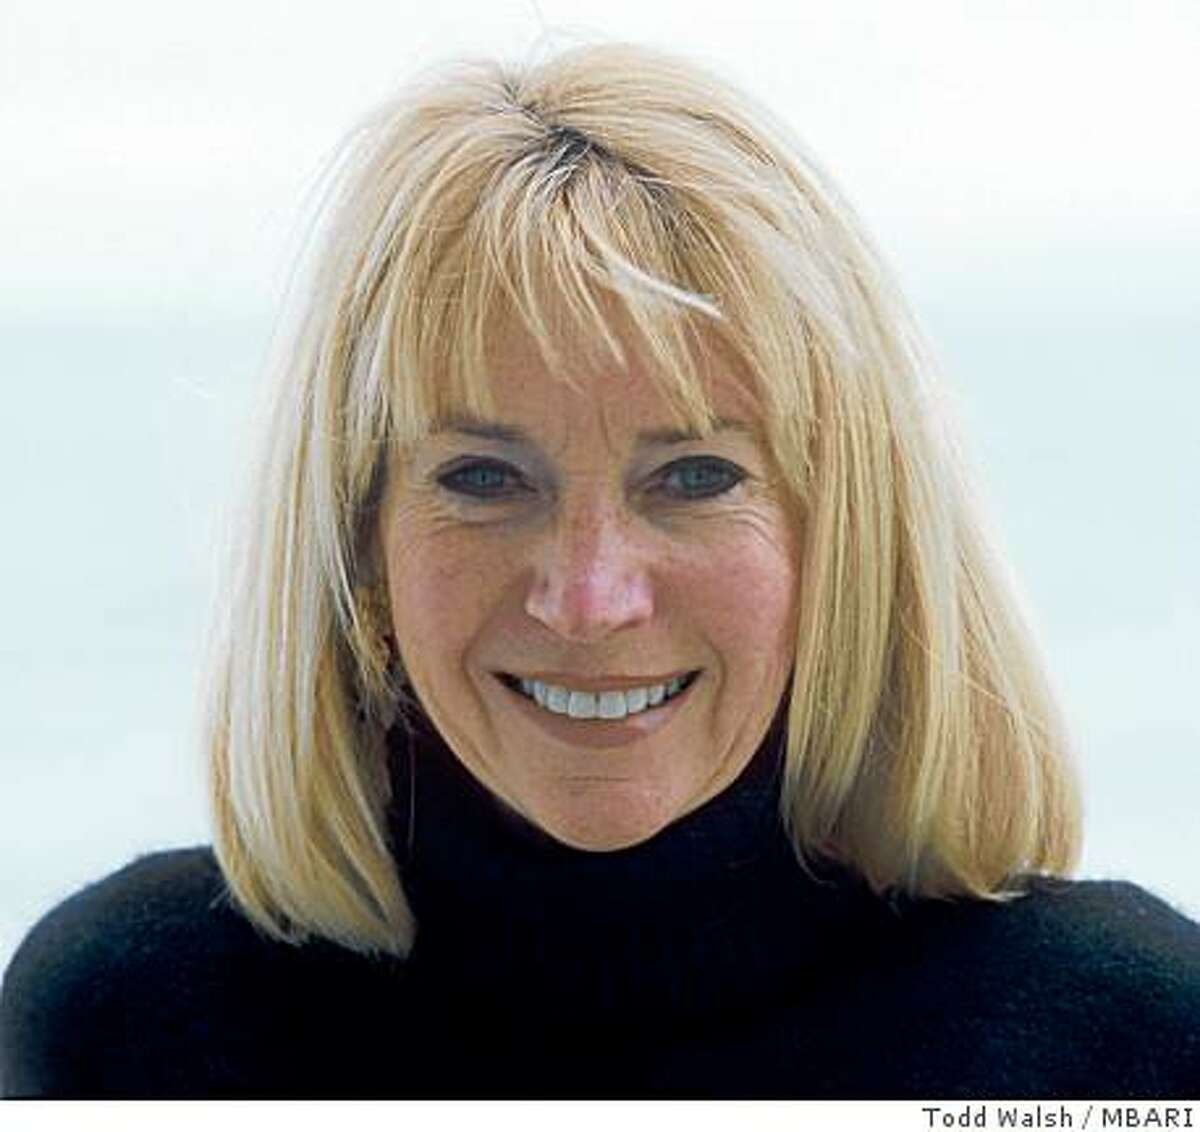 President Obama has named marine geophysicist Marcia McNutt, director of the Monterey Bay Aquarium Research Institue, as new director of the US Geological Survey.